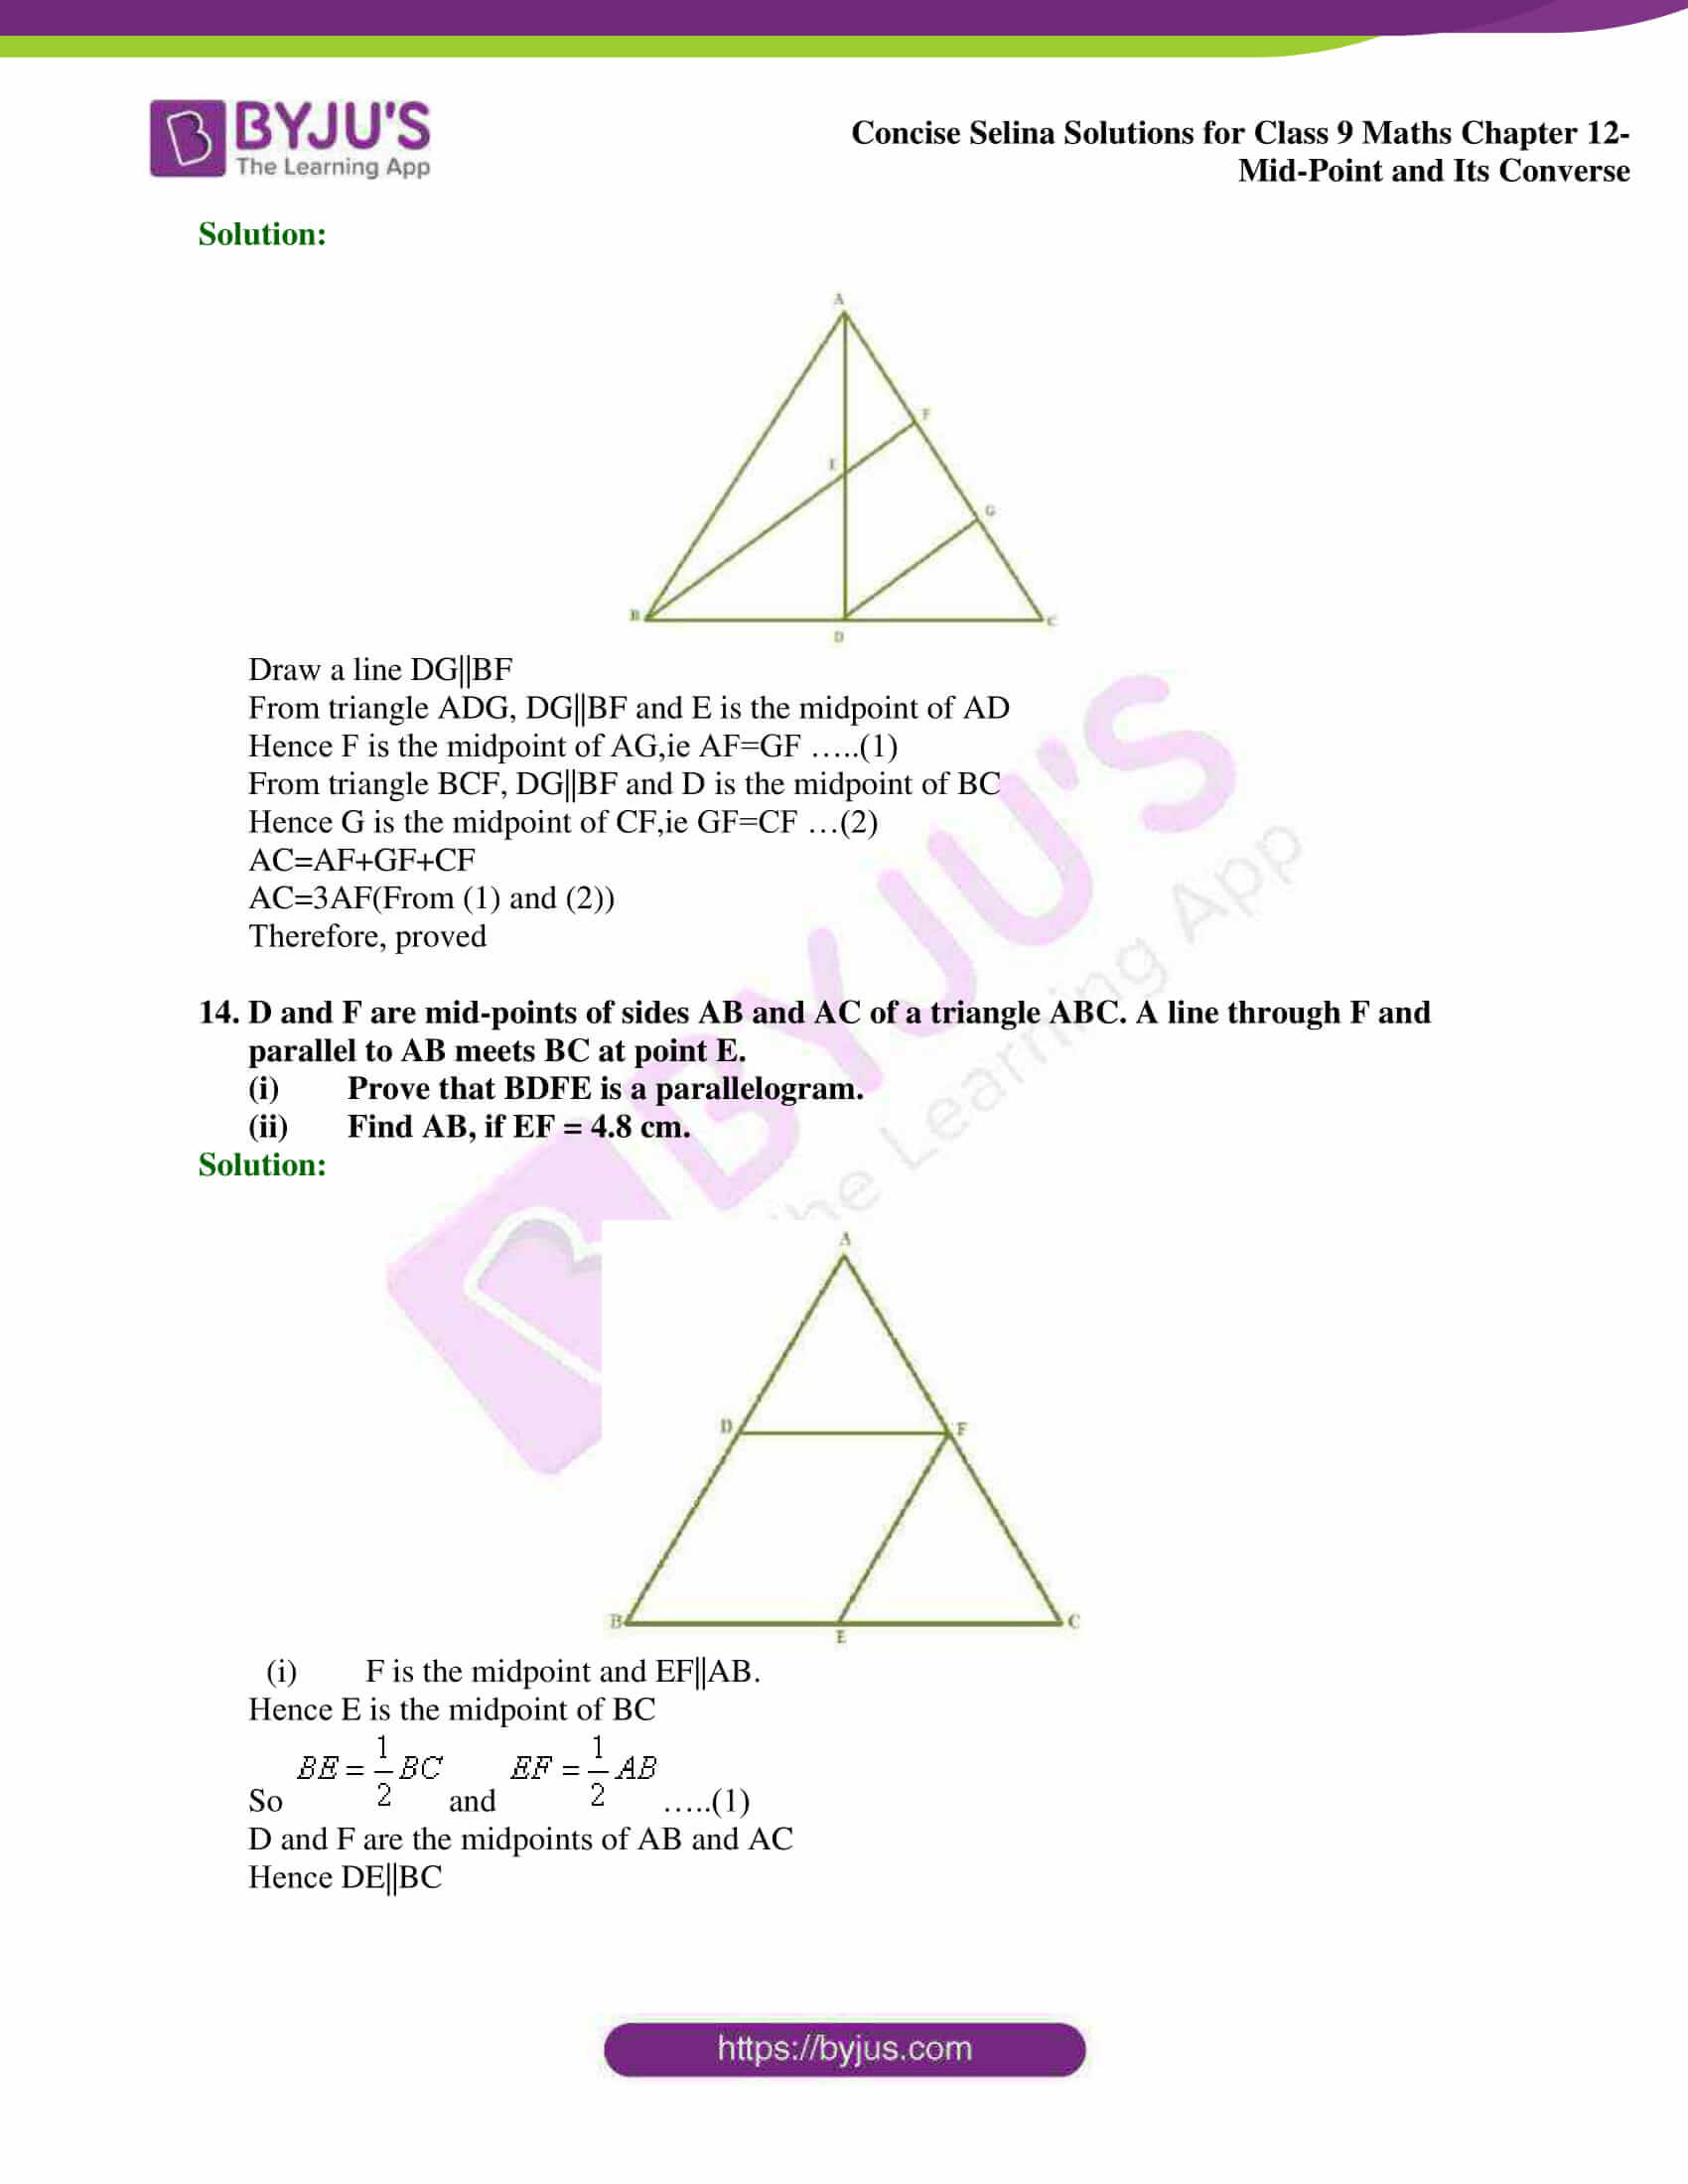 selina Solutions for Class 9 Maths Chapter 12 09